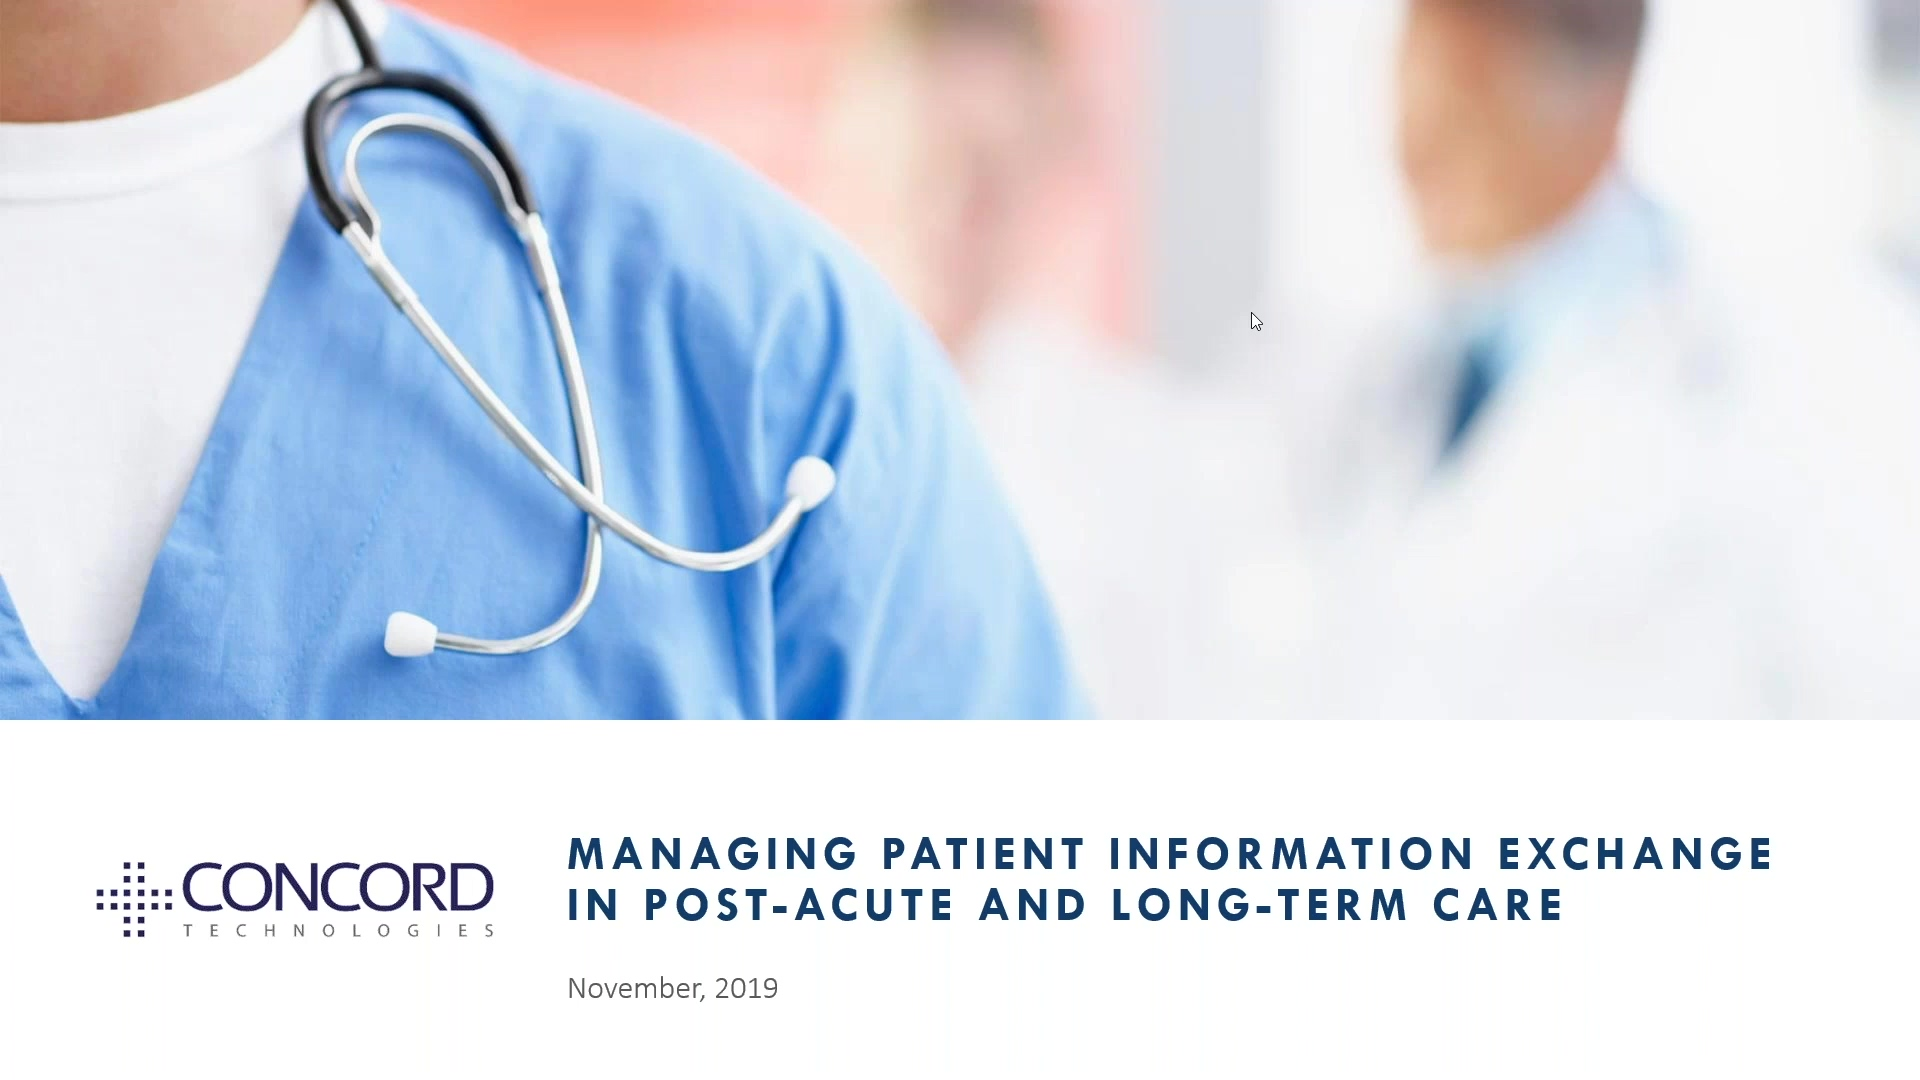 Managing patient information exchange in Post-acute and Long-term care-thumb